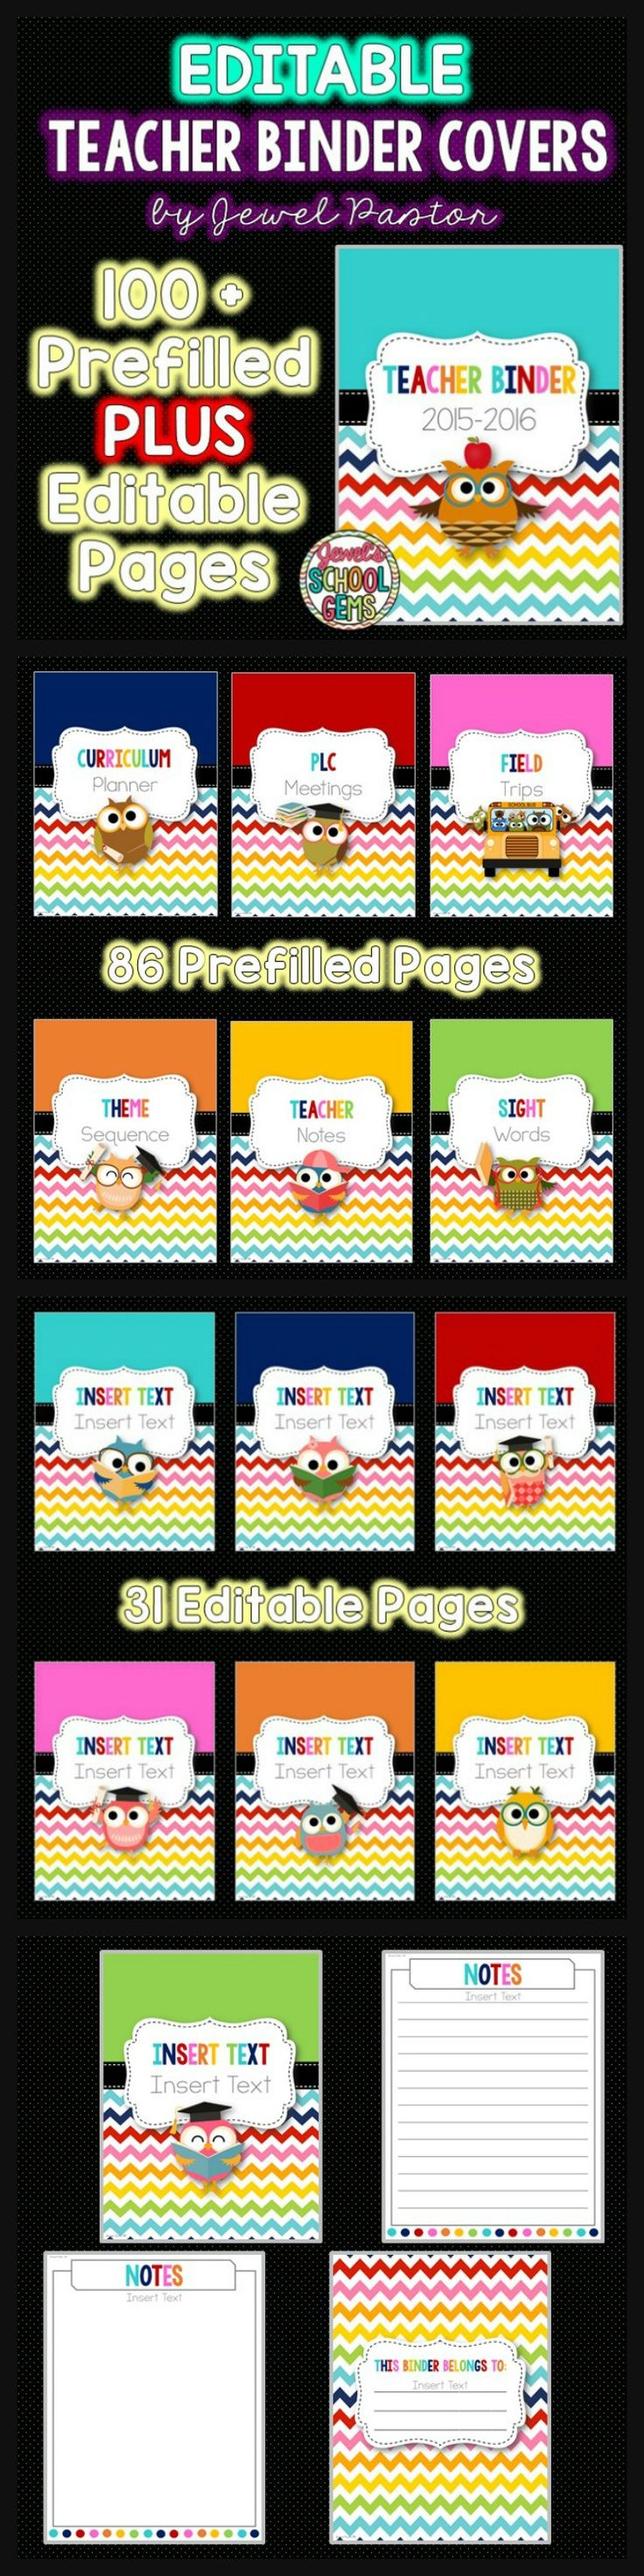 Editable Teacher Binder : Editable Teacher Binder Covers Editable Teacher Binder Covers Keep organized with this set of editable teacher binder covers! This set has 117 pages of prefilled and editable pages. These covers feature a rainbow chevron and owl theme.